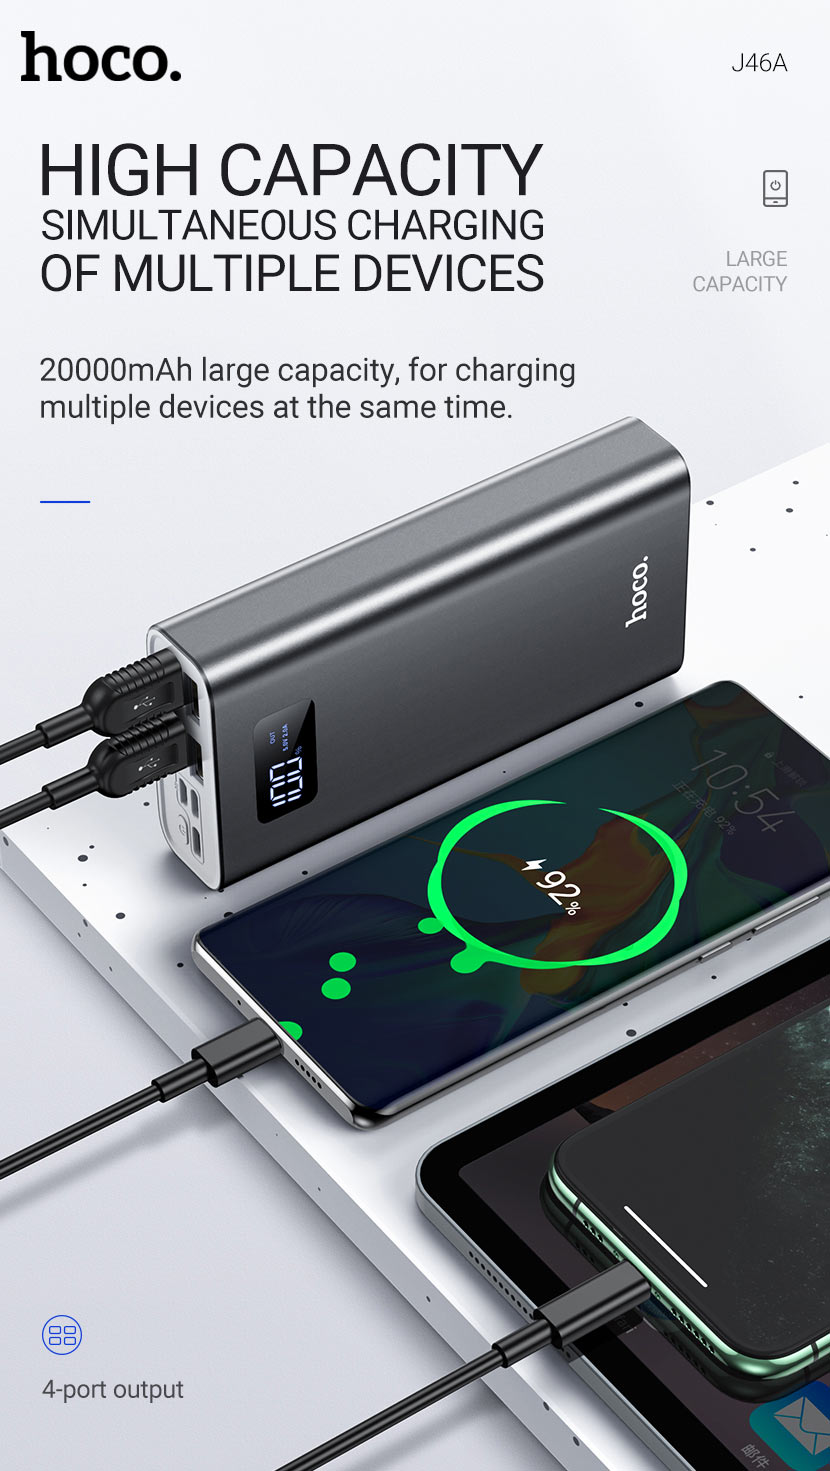 hoco news j46a star ocean mobile power bank 20000mah charging en